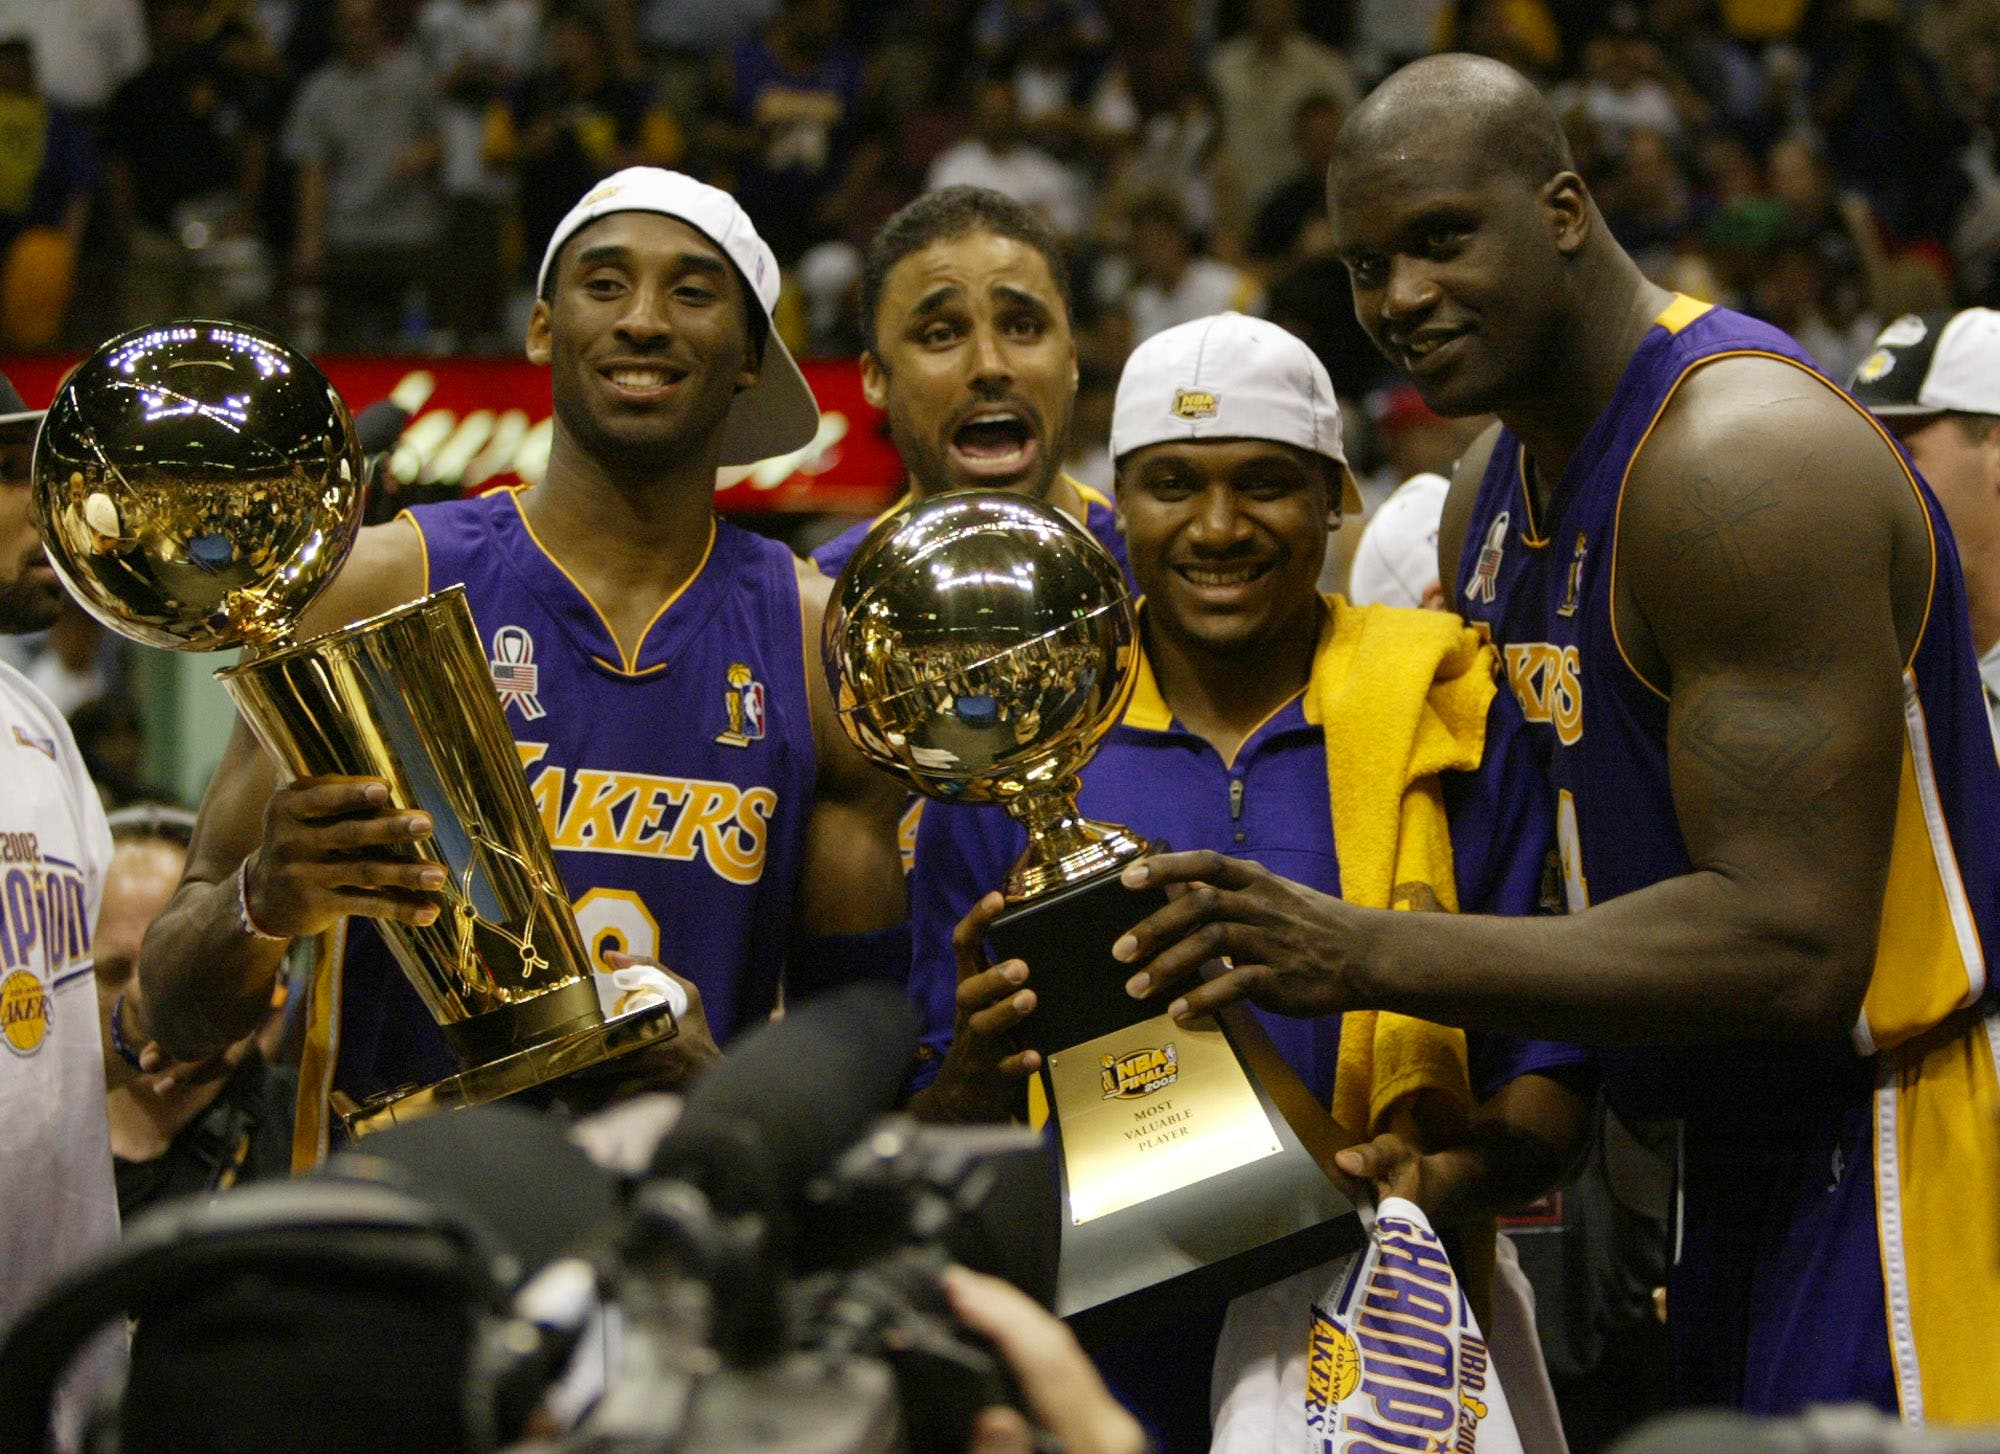 Los Angeles Lakers Kobe Bryant, left, holding the championship trophy, celebrates with teammates Rick Fox, Lindsey Hunter, second from right, and Shaquille O'Neal, right, holding the MVP trophy, after winning Game 4 of the NBA Finals, Wednesday, June 12, 2002, in East Rutherford, N.J. (AP)